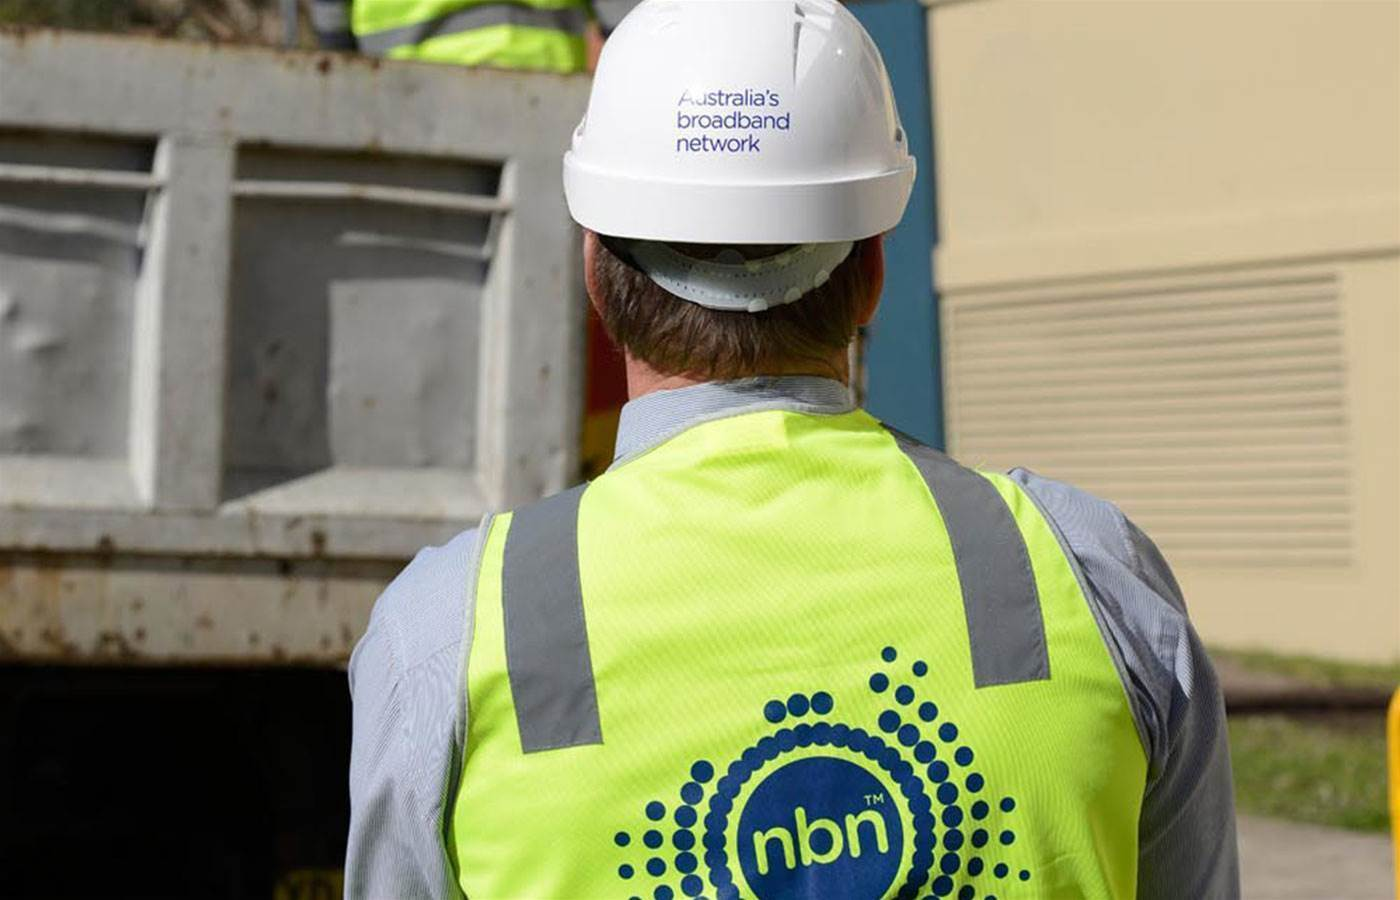 NBN to launch partner program with help from Westcon, Telstra and Computer Troubleshooters